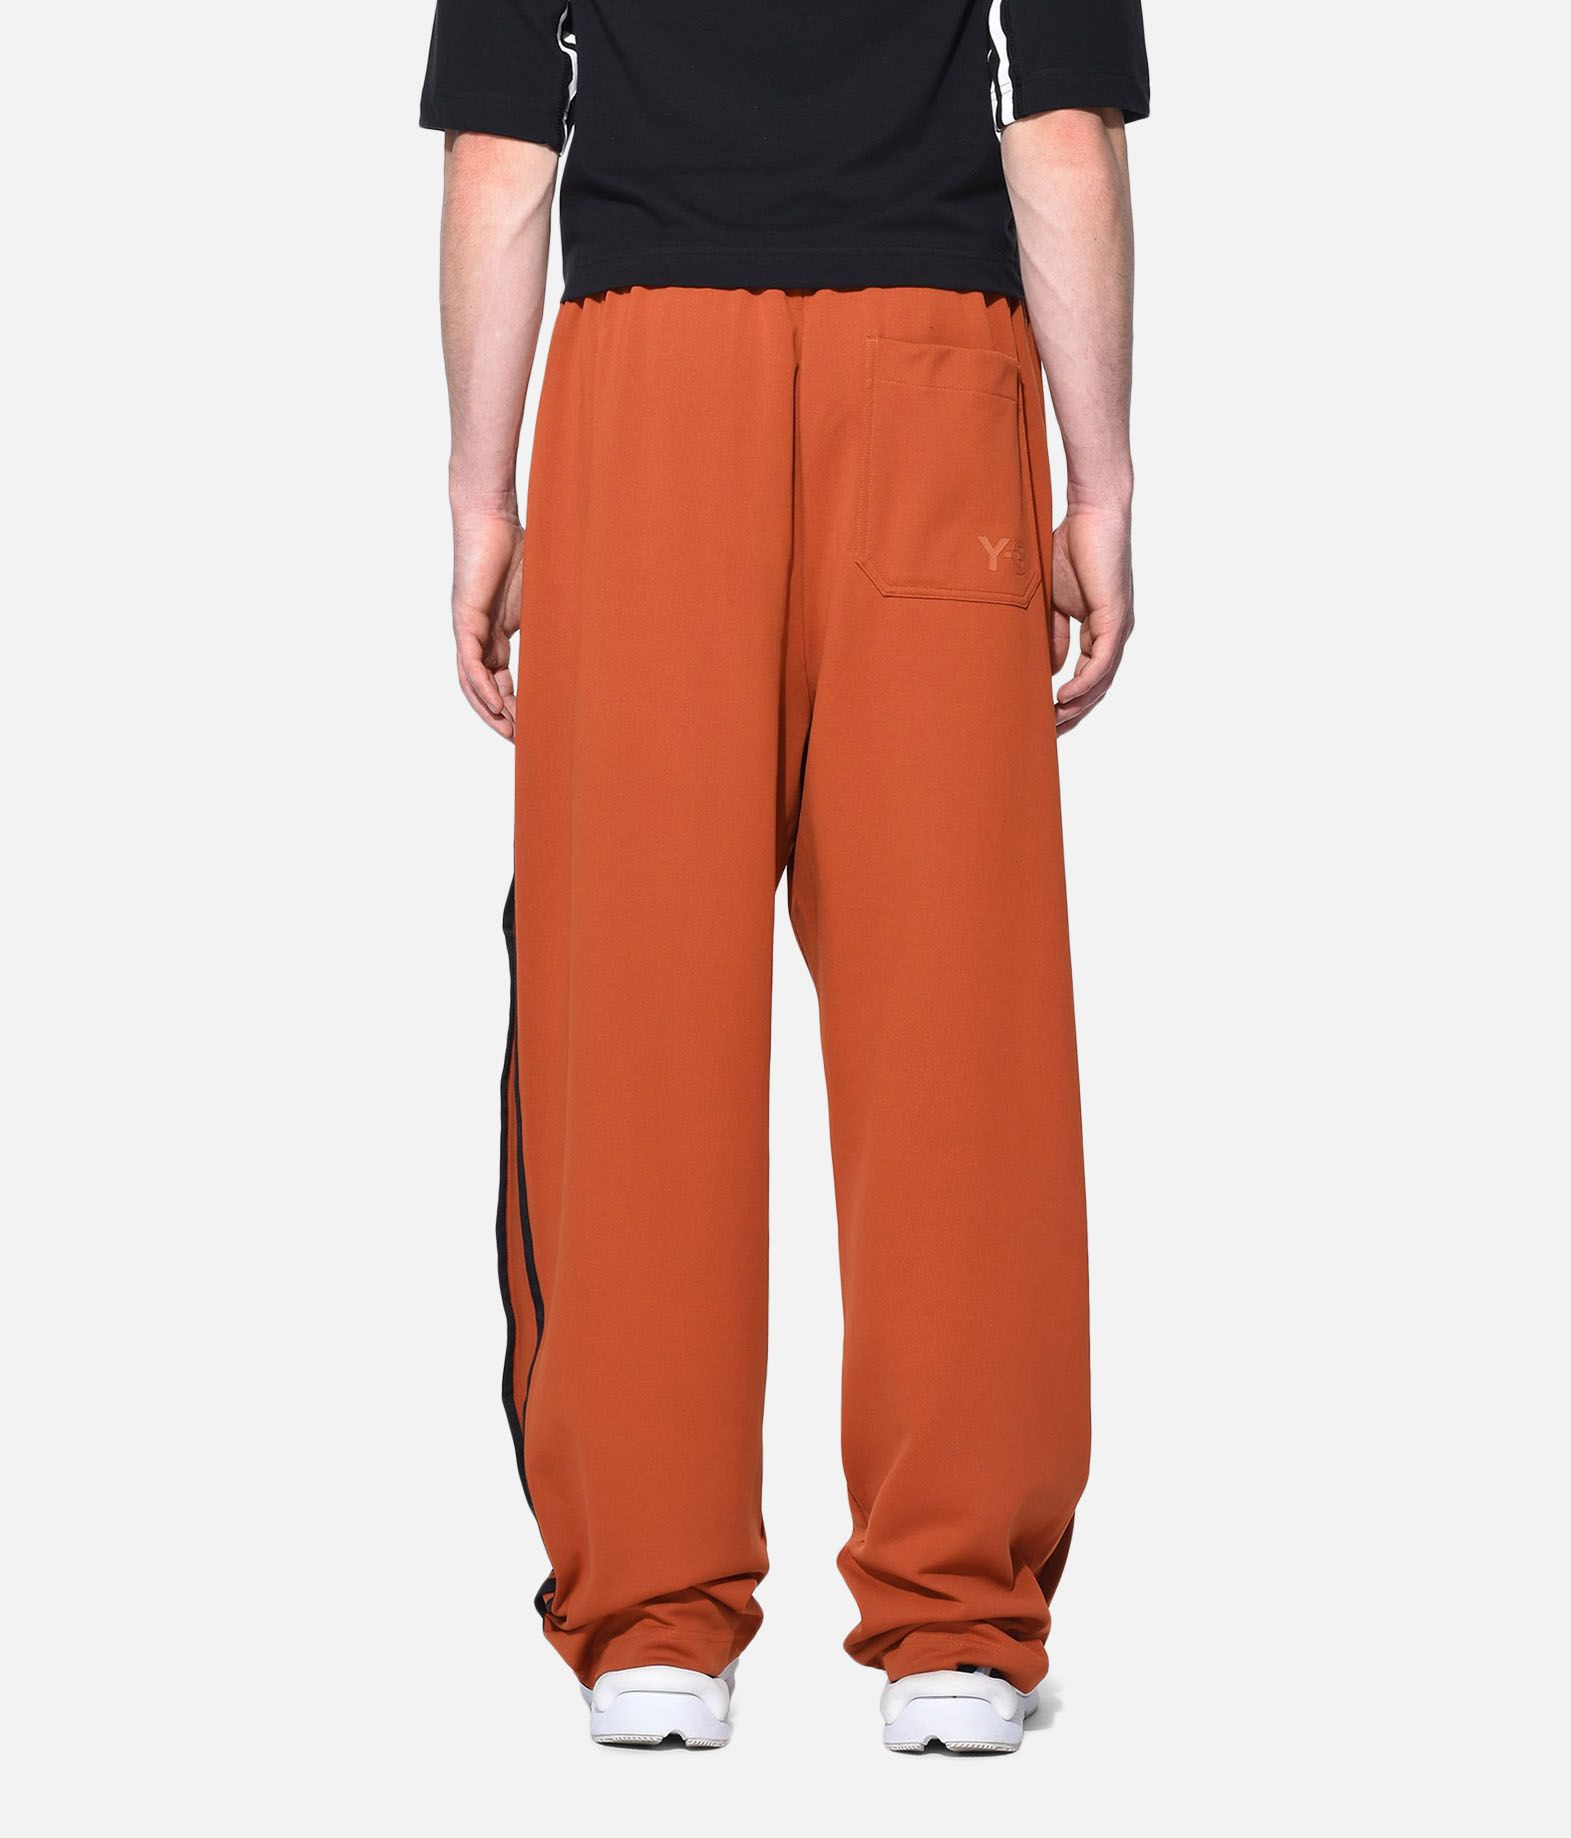 Y-3 Y-3 3-Stripes Selvedge Wide Pants Tracksuit pants Man d